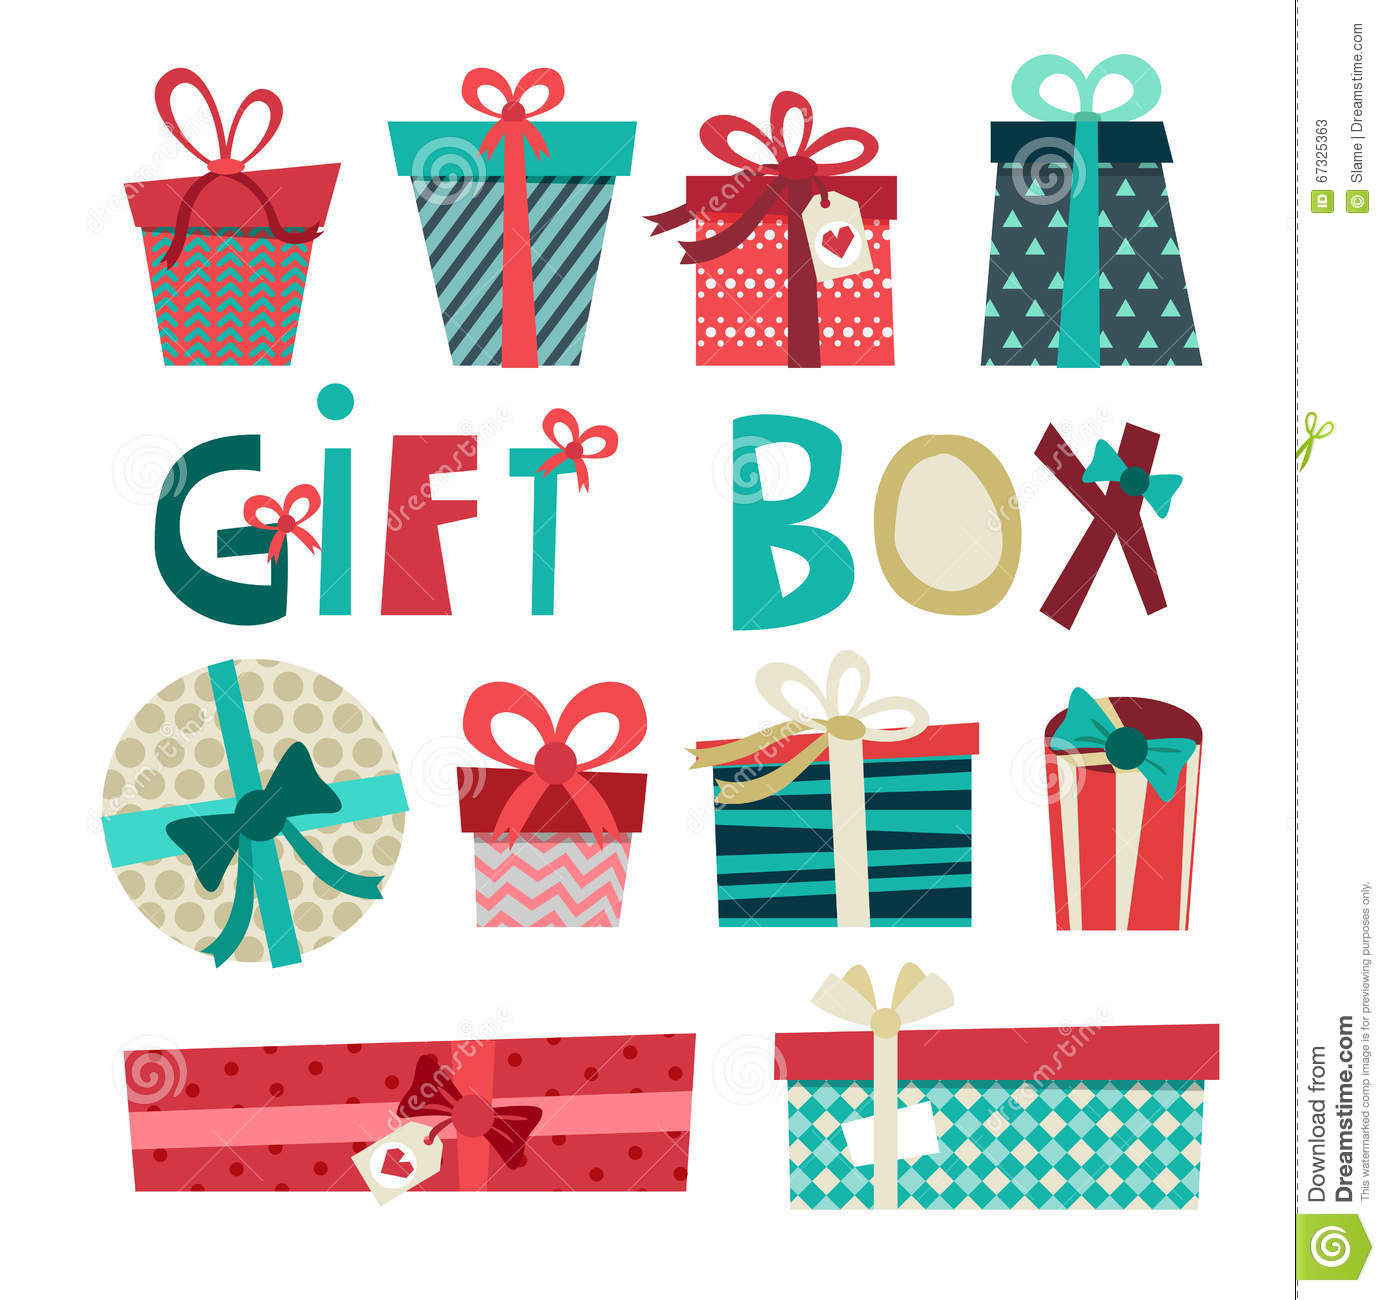 Birthday Gift Box Cartoon Vector Set Gift Wrapping With Ribbons